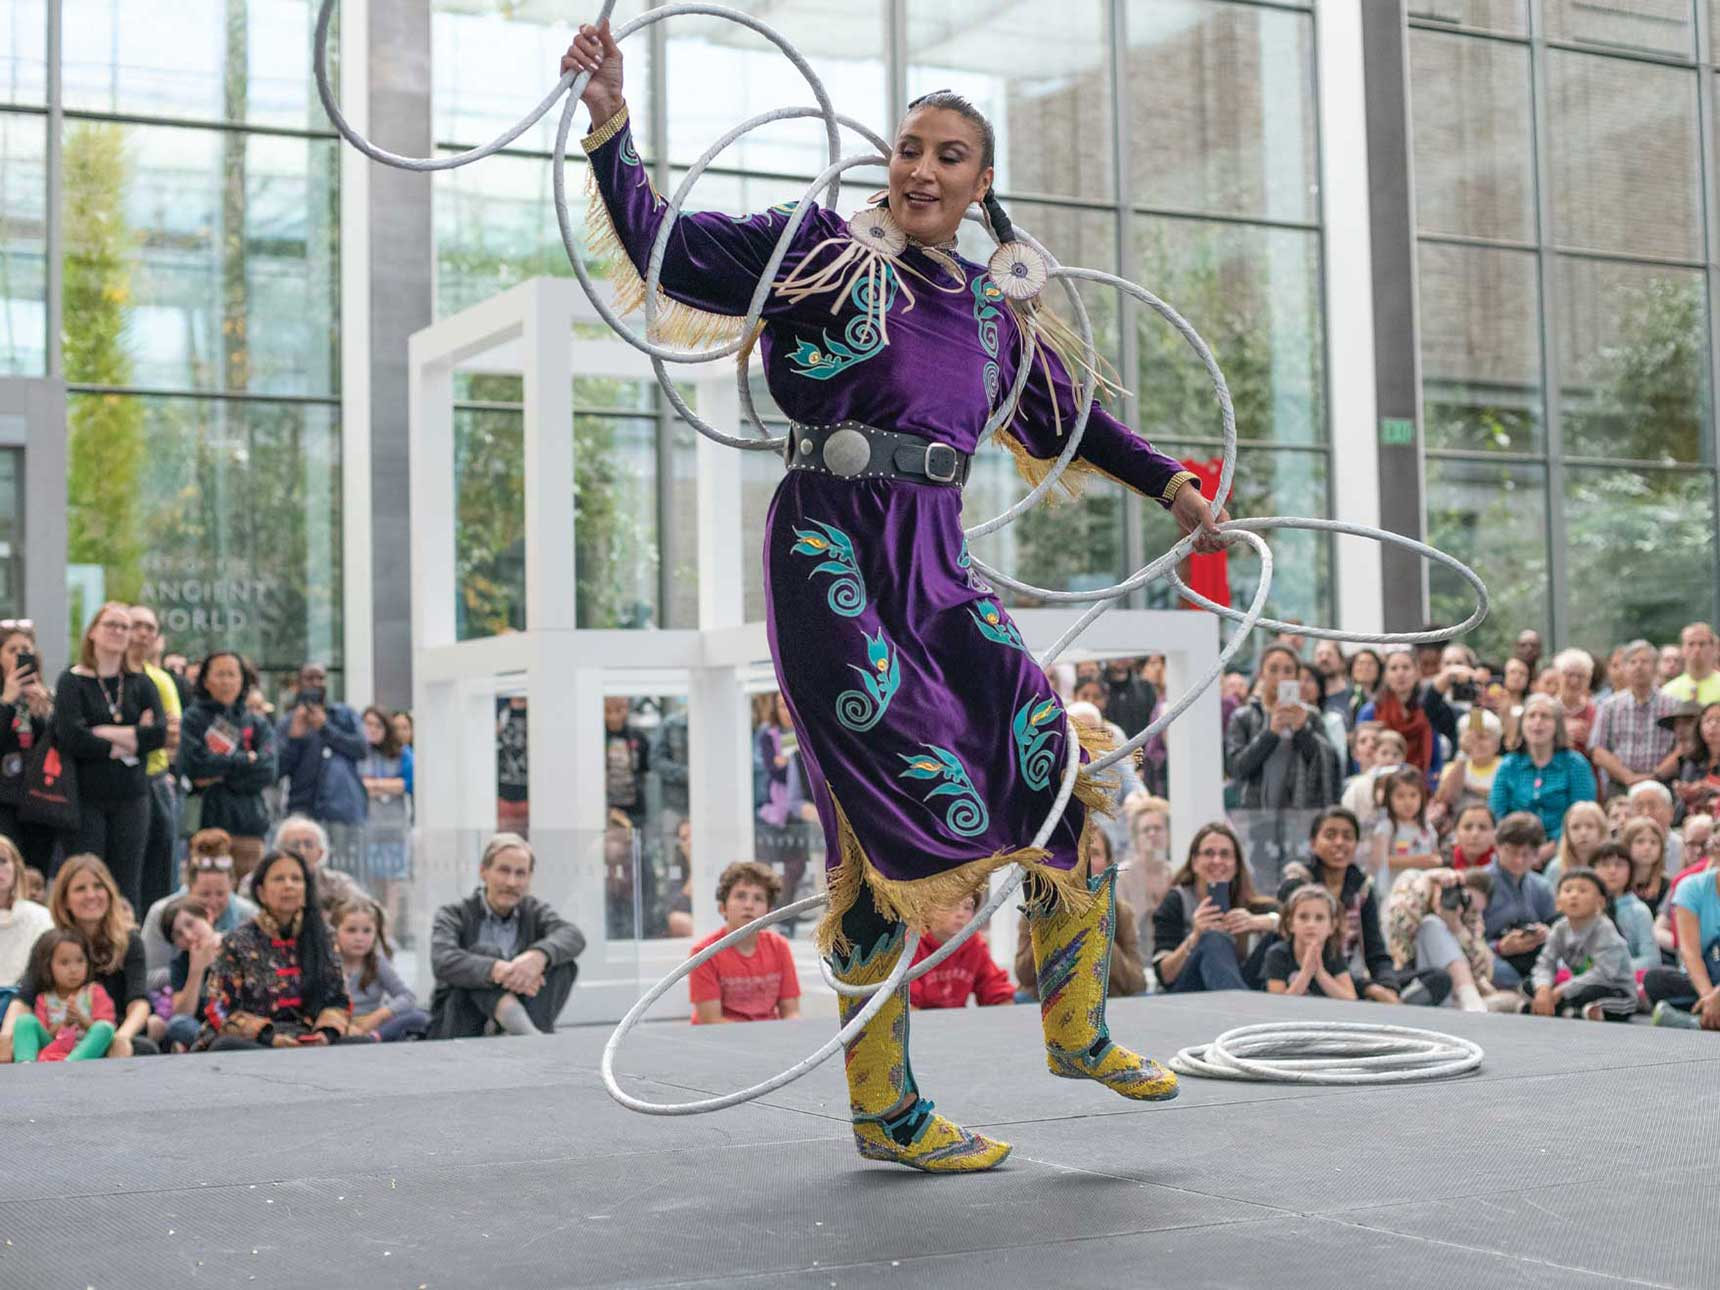 Dancer with hoops performing in front of an audience in Shapiro Family Courtyard